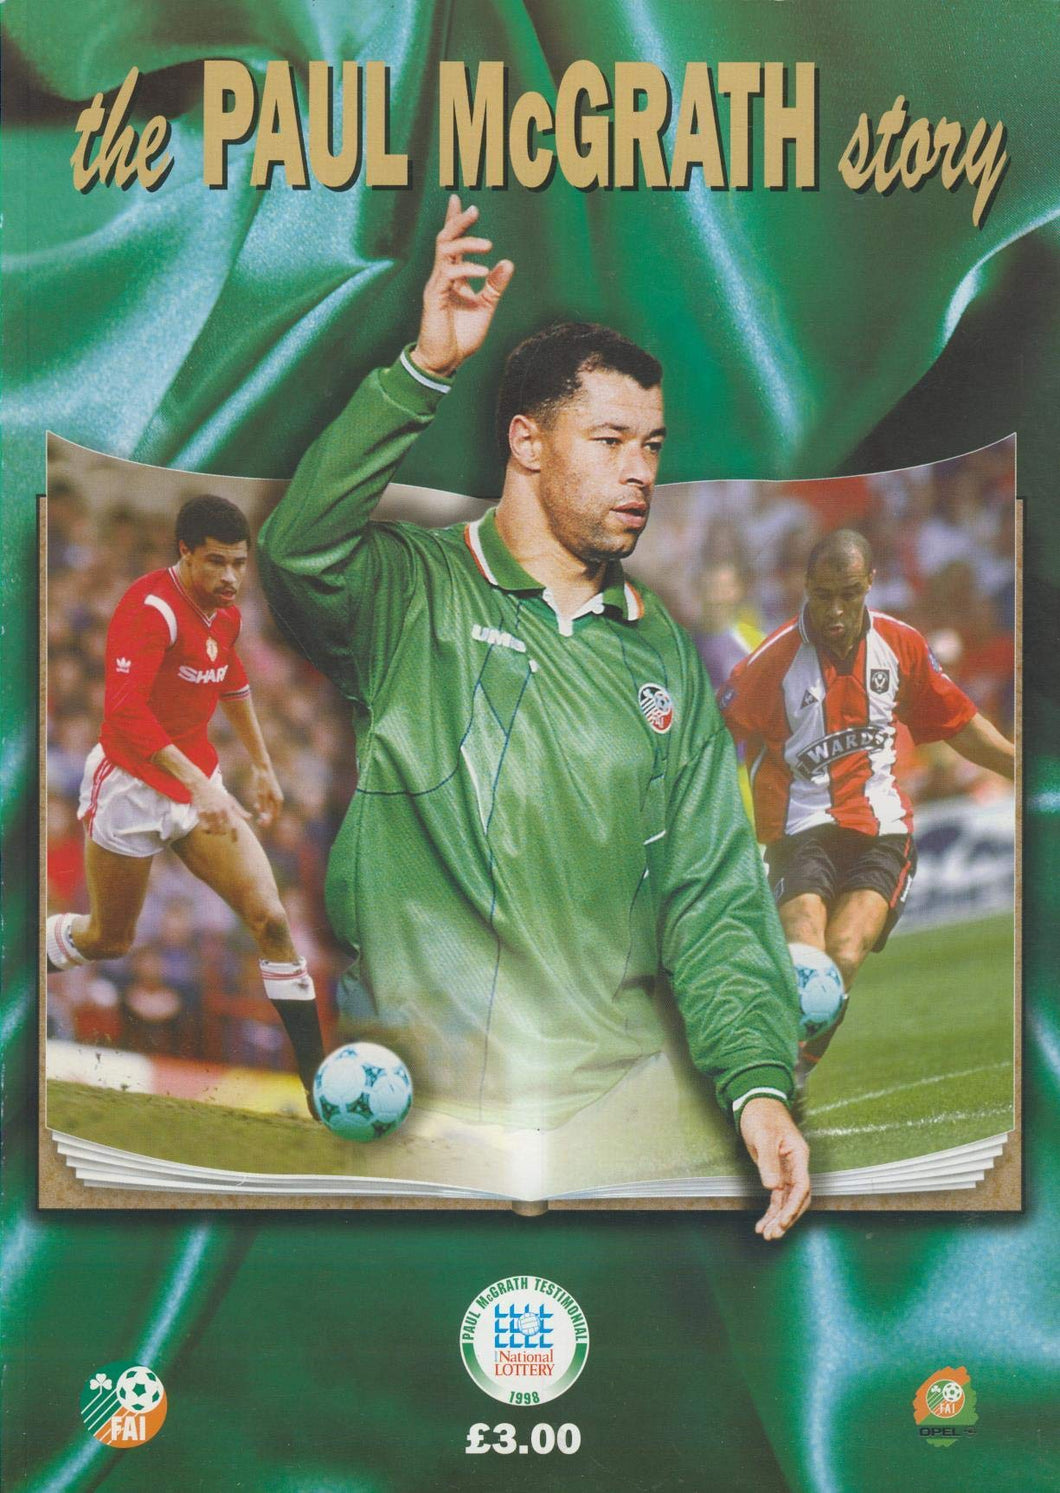 The Paul McGrath Story